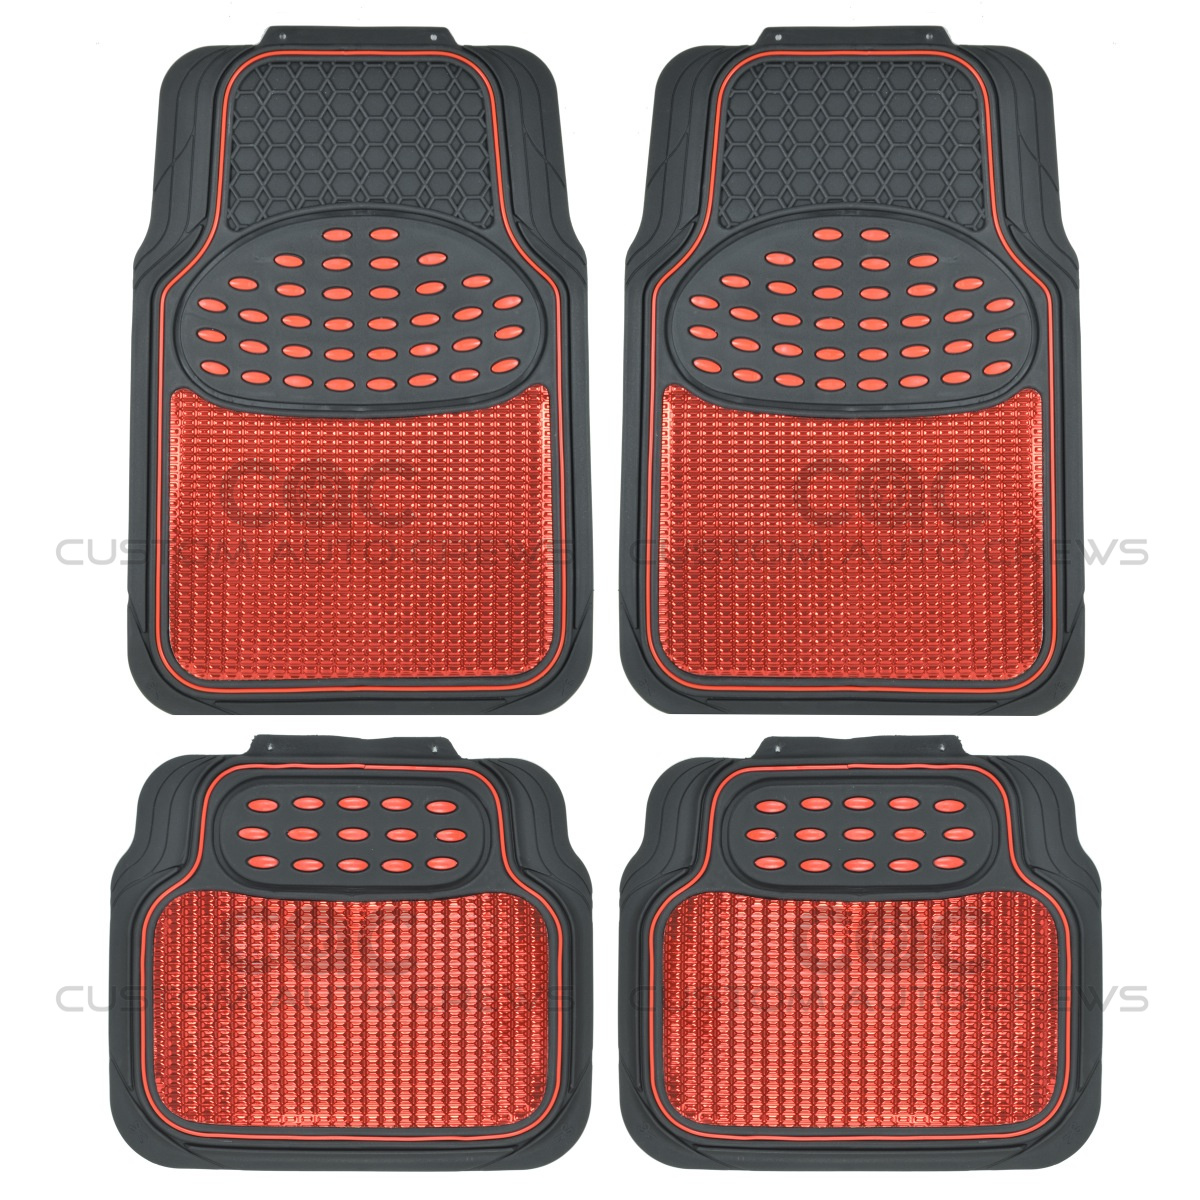 Rubber mats ebay - Image Is Loading Car Rubber Floor Mats Red Metallic Design On